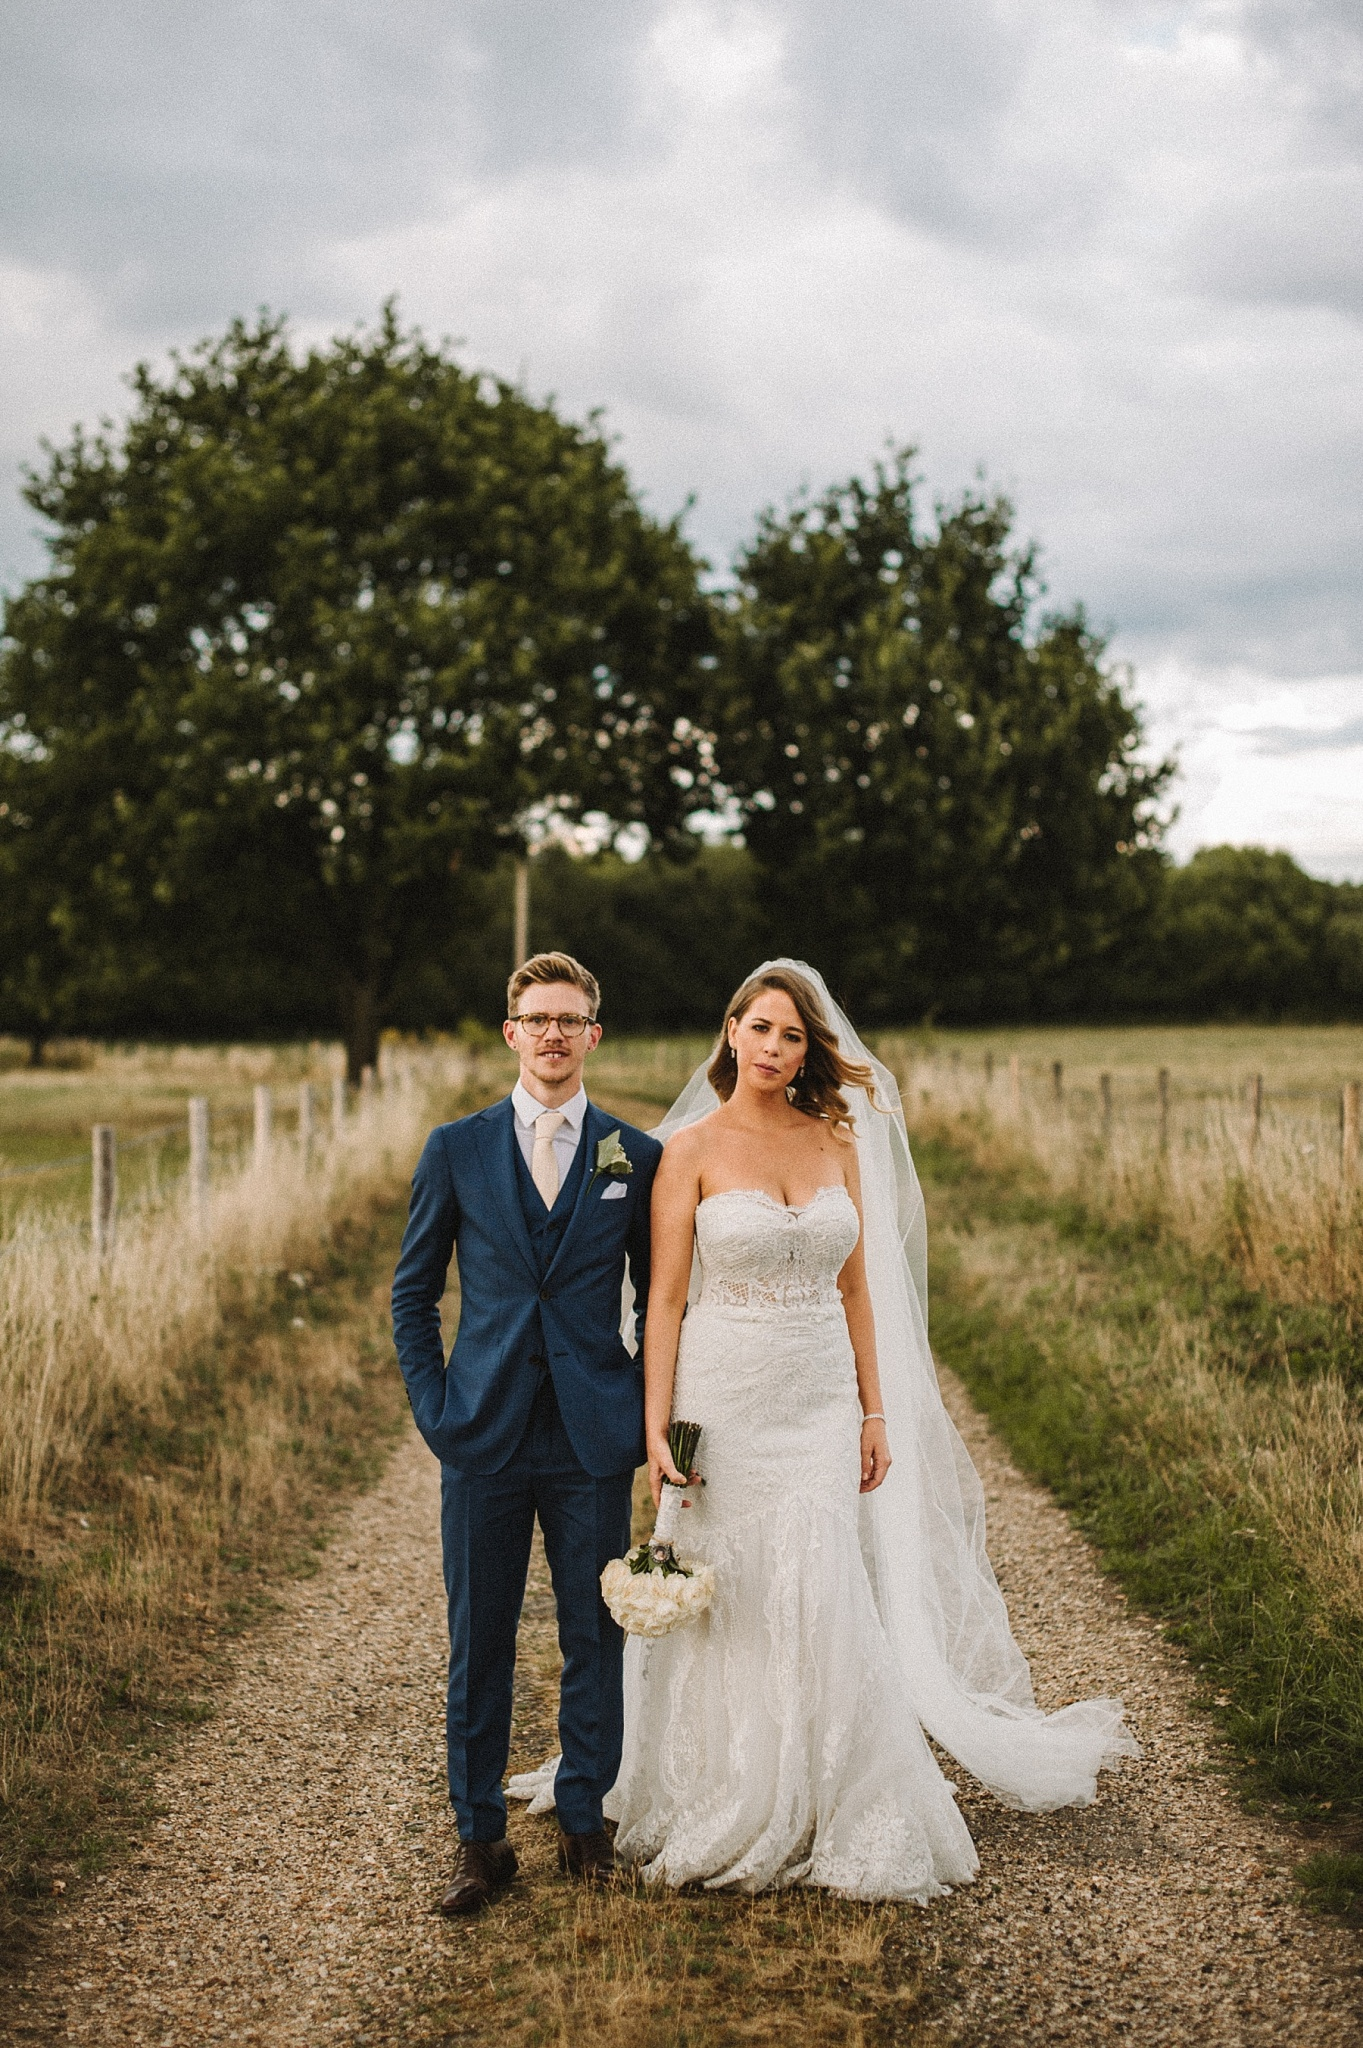 The Elvetham Hampshire wedding